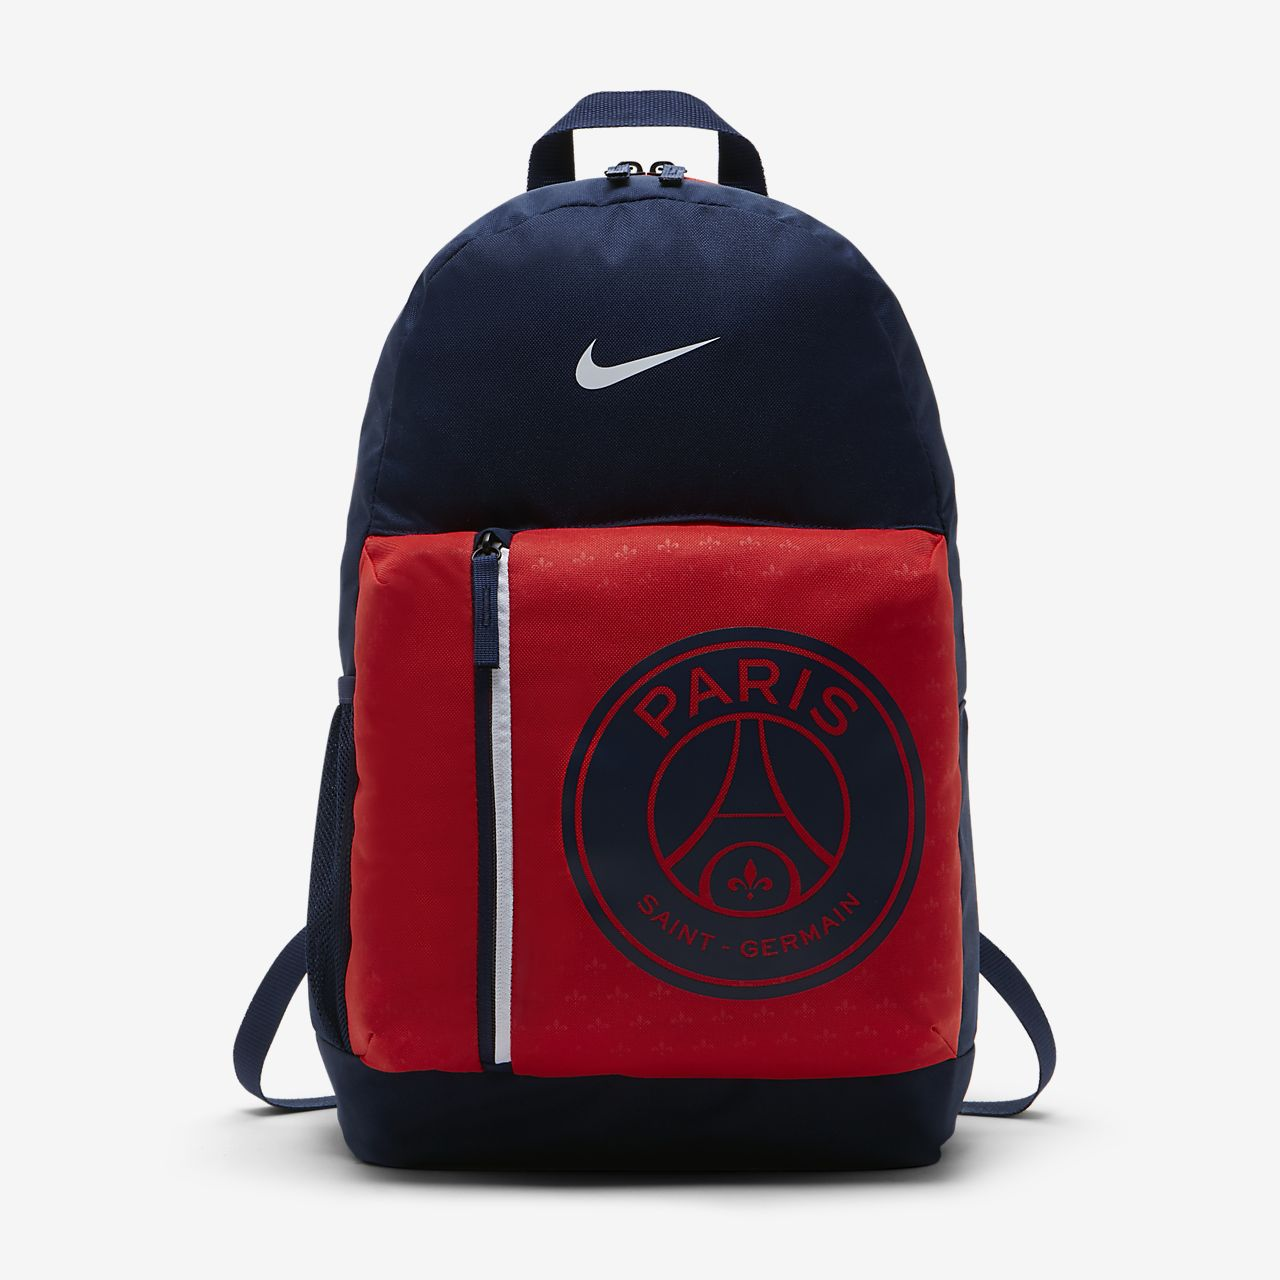 29125a3d5179 Paris Saint-Germain Stadium Kids  Football Backpack. Nike.com GB